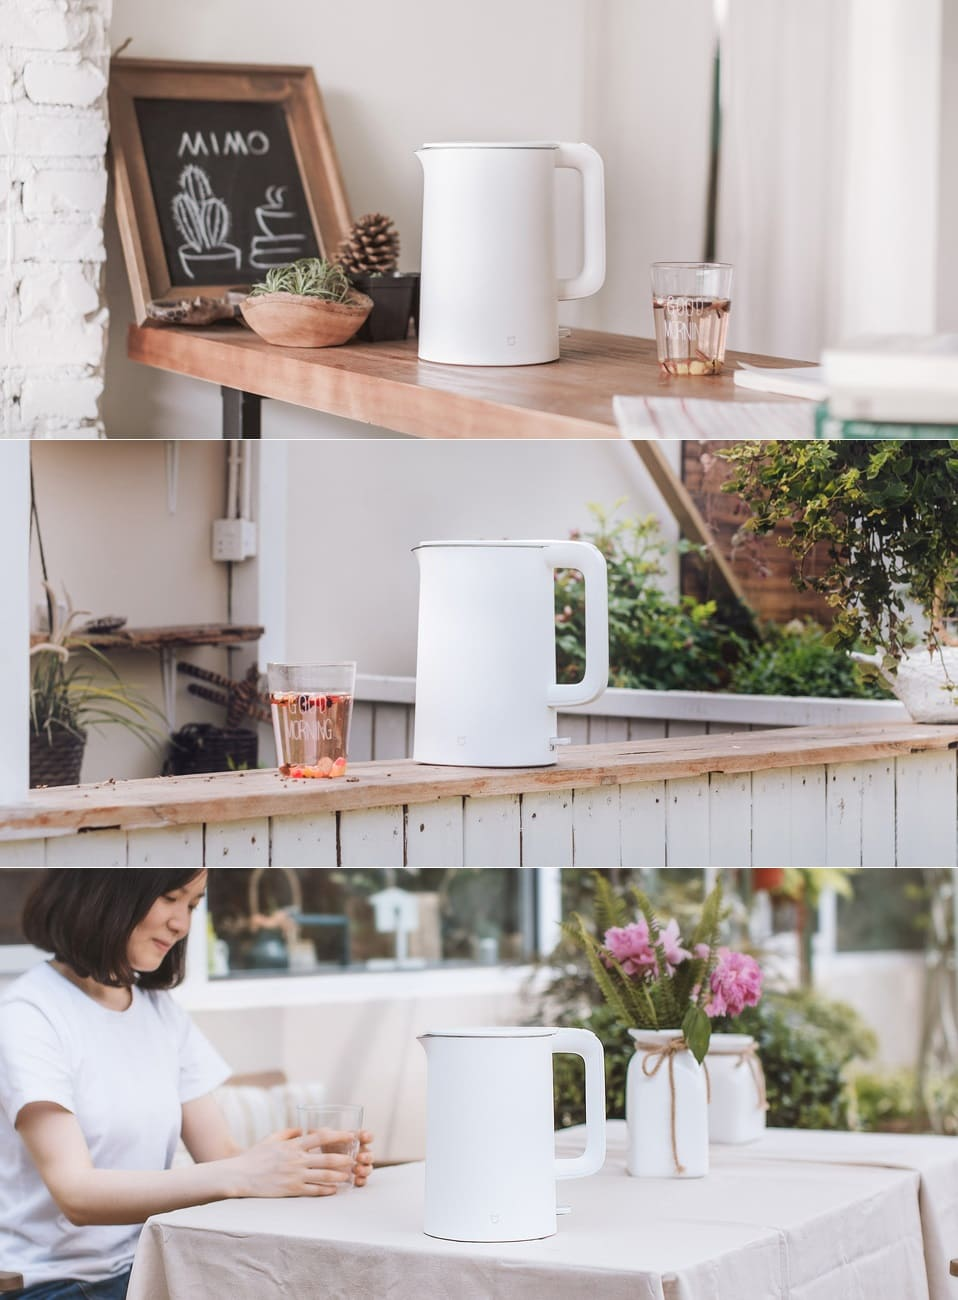 MIJia Electric Kettle 012